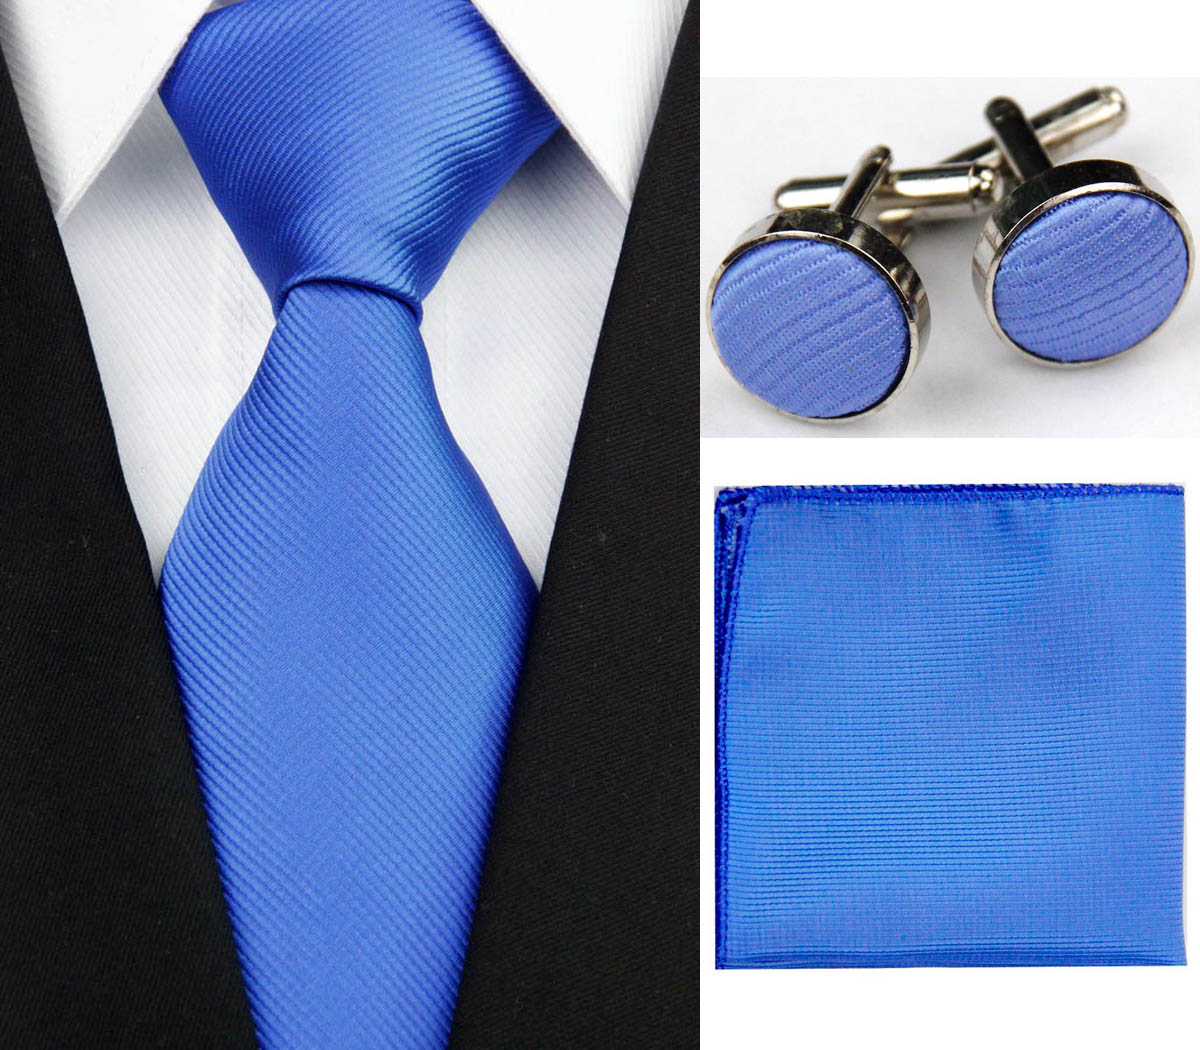 Find great deals on eBay for men's tie accessories. Shop with confidence.